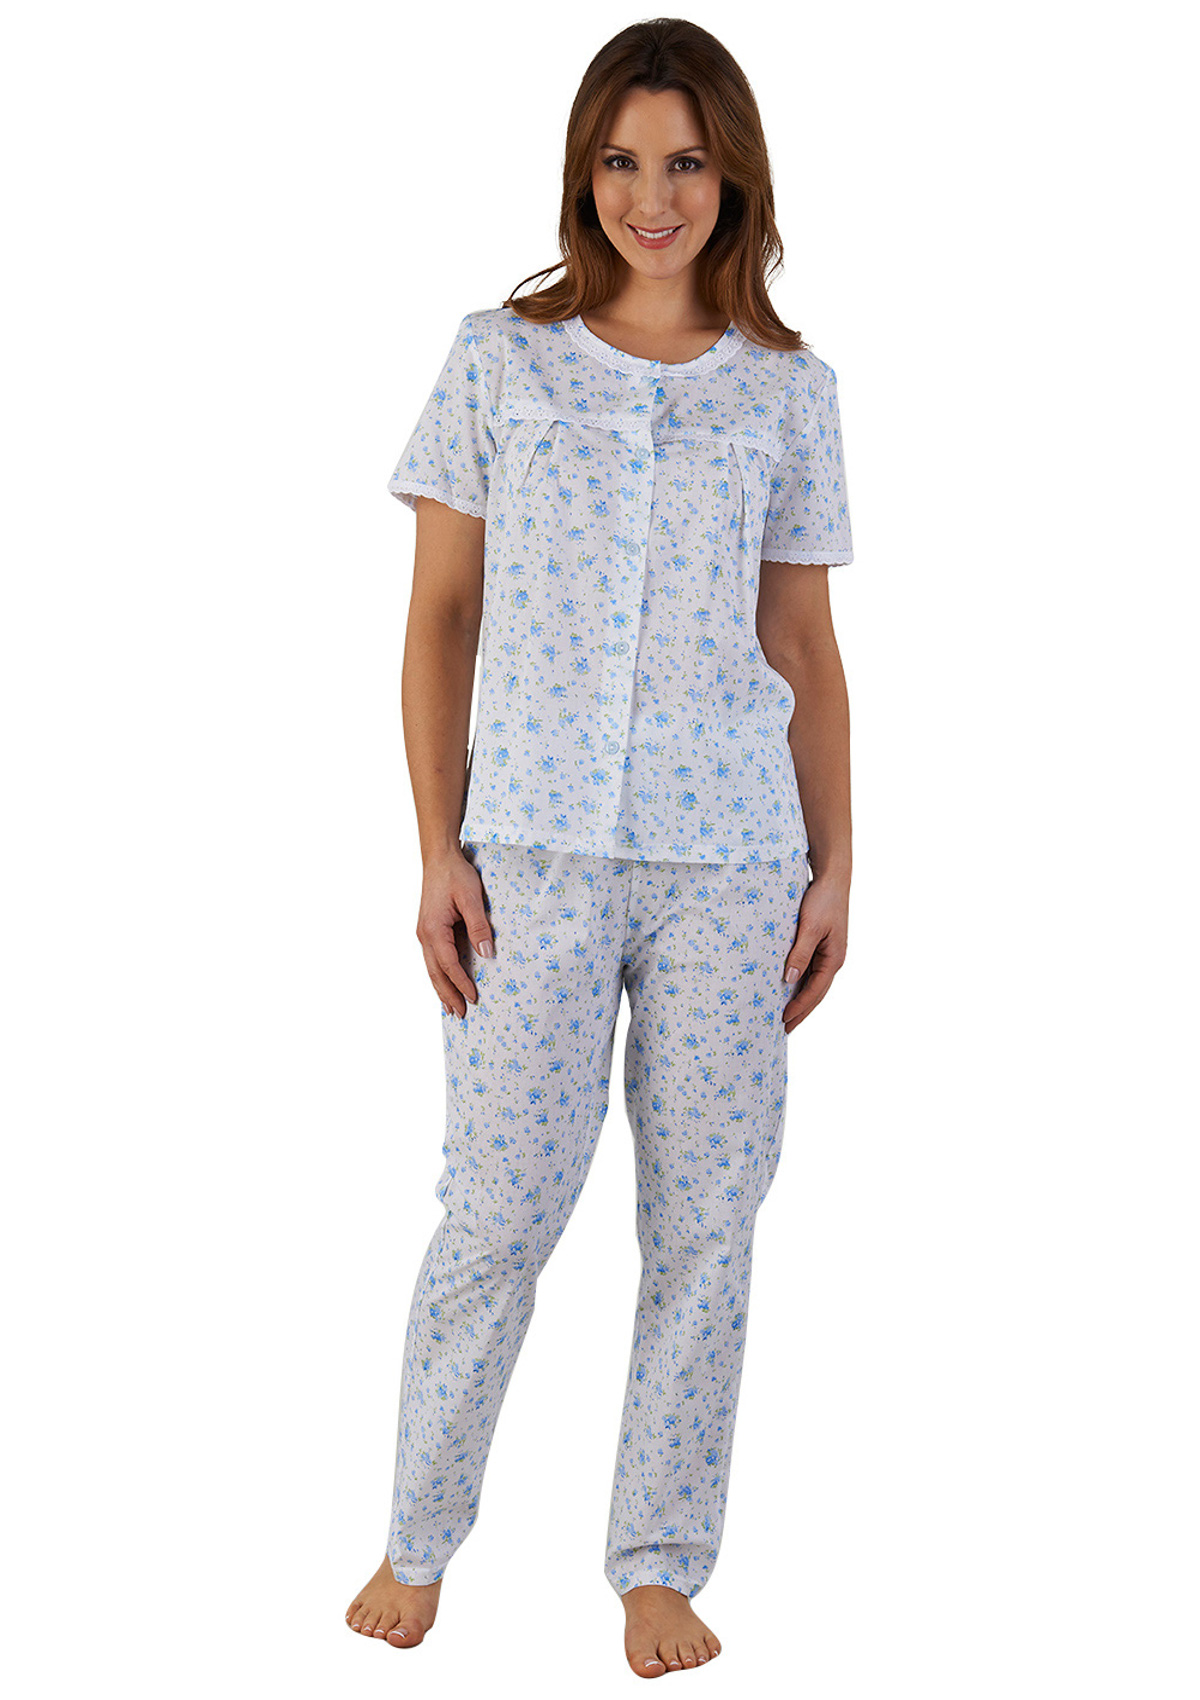 Women's Pyjama Tops Upgrade your nightly rotation with pyjama tops in versatile designs to ensure a peaceful night's sleep. At George, our bedtime tops come in soft shades like pink, blue, white or grey.